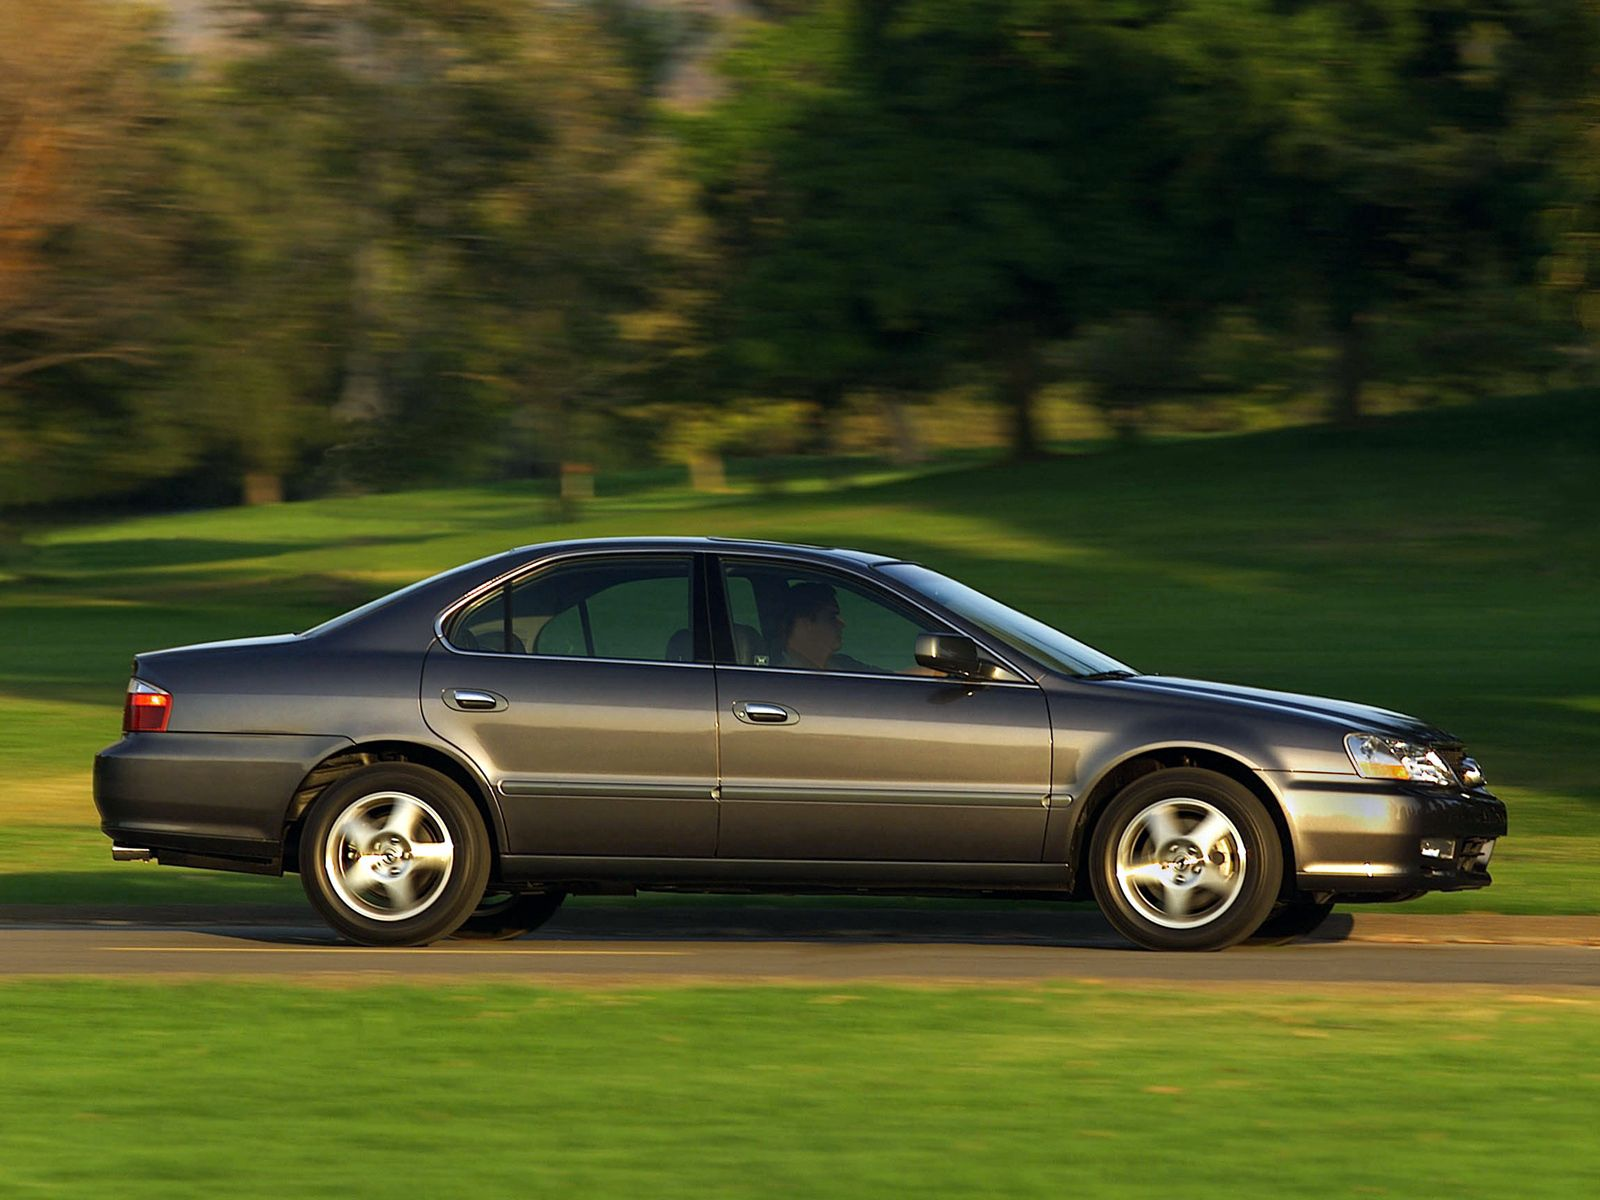 120721 download wallpaper Cars, Acura, Akura, 2002, Side View, Style, Auto, Tl, Speed, Nature, Trees, Grass screensavers and pictures for free